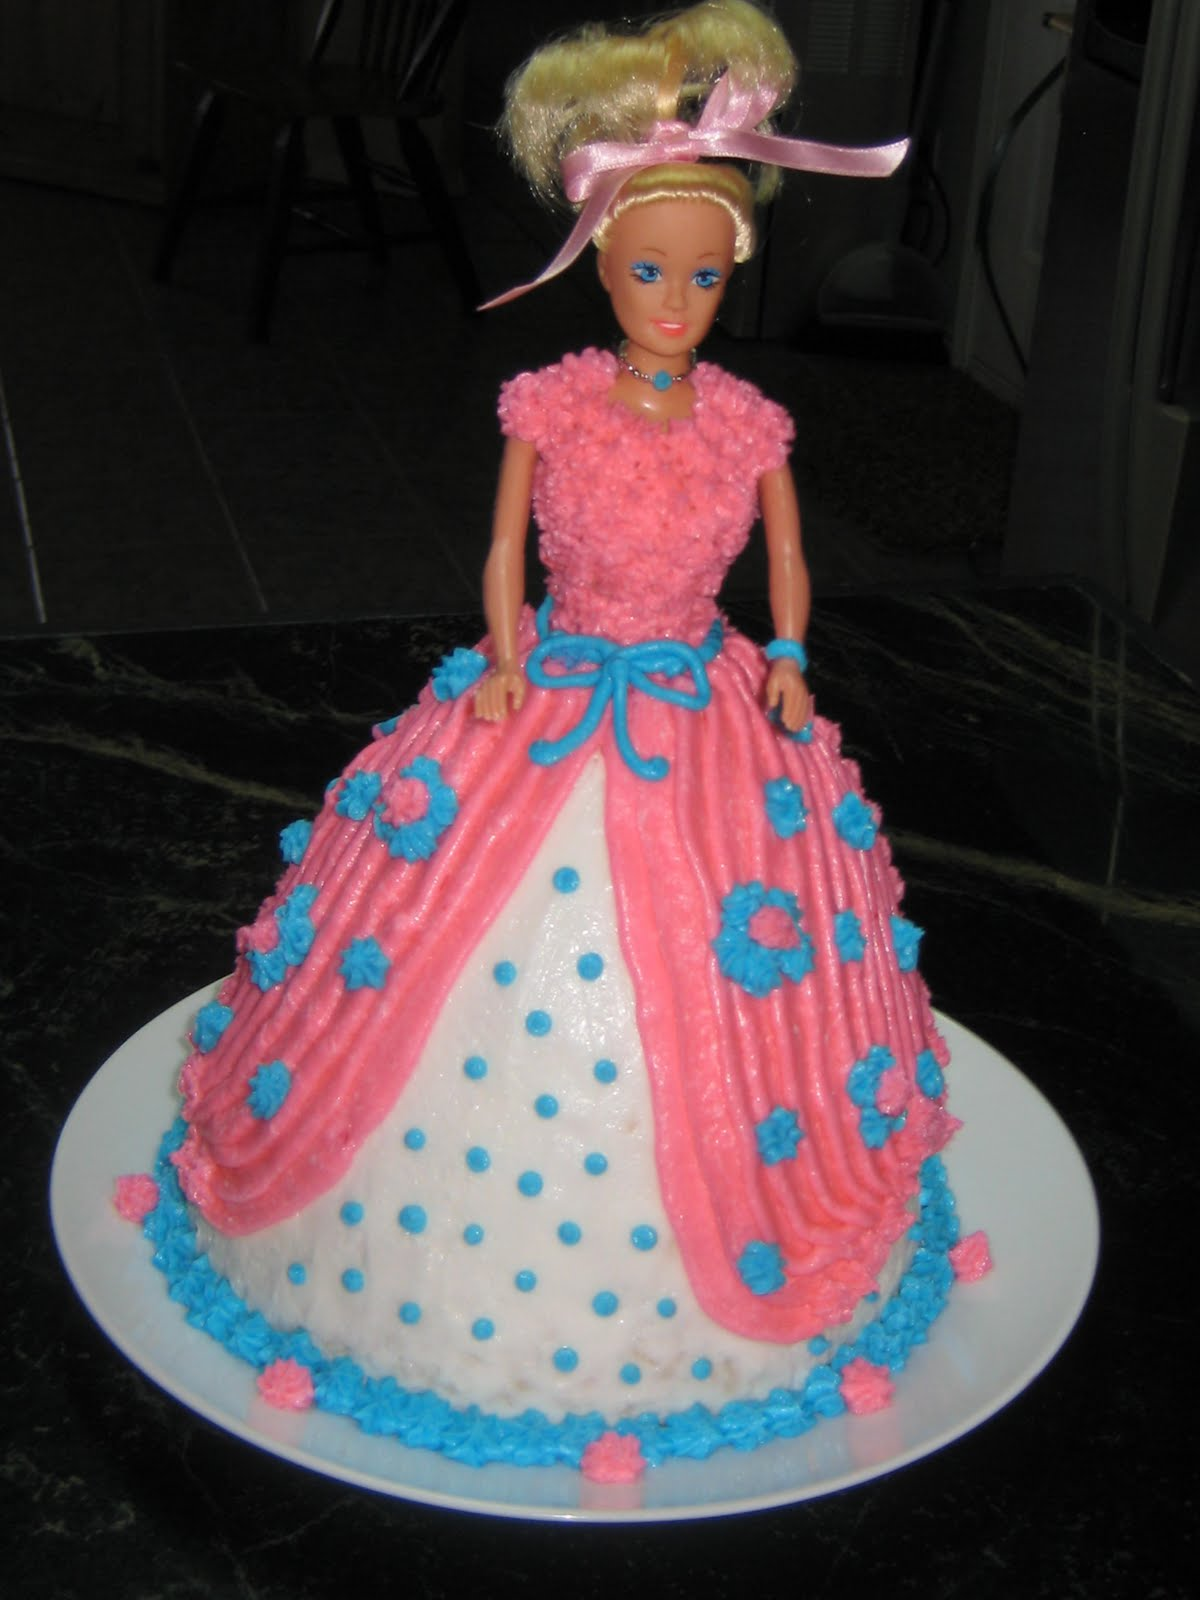 How Much Batter For Doll Cake